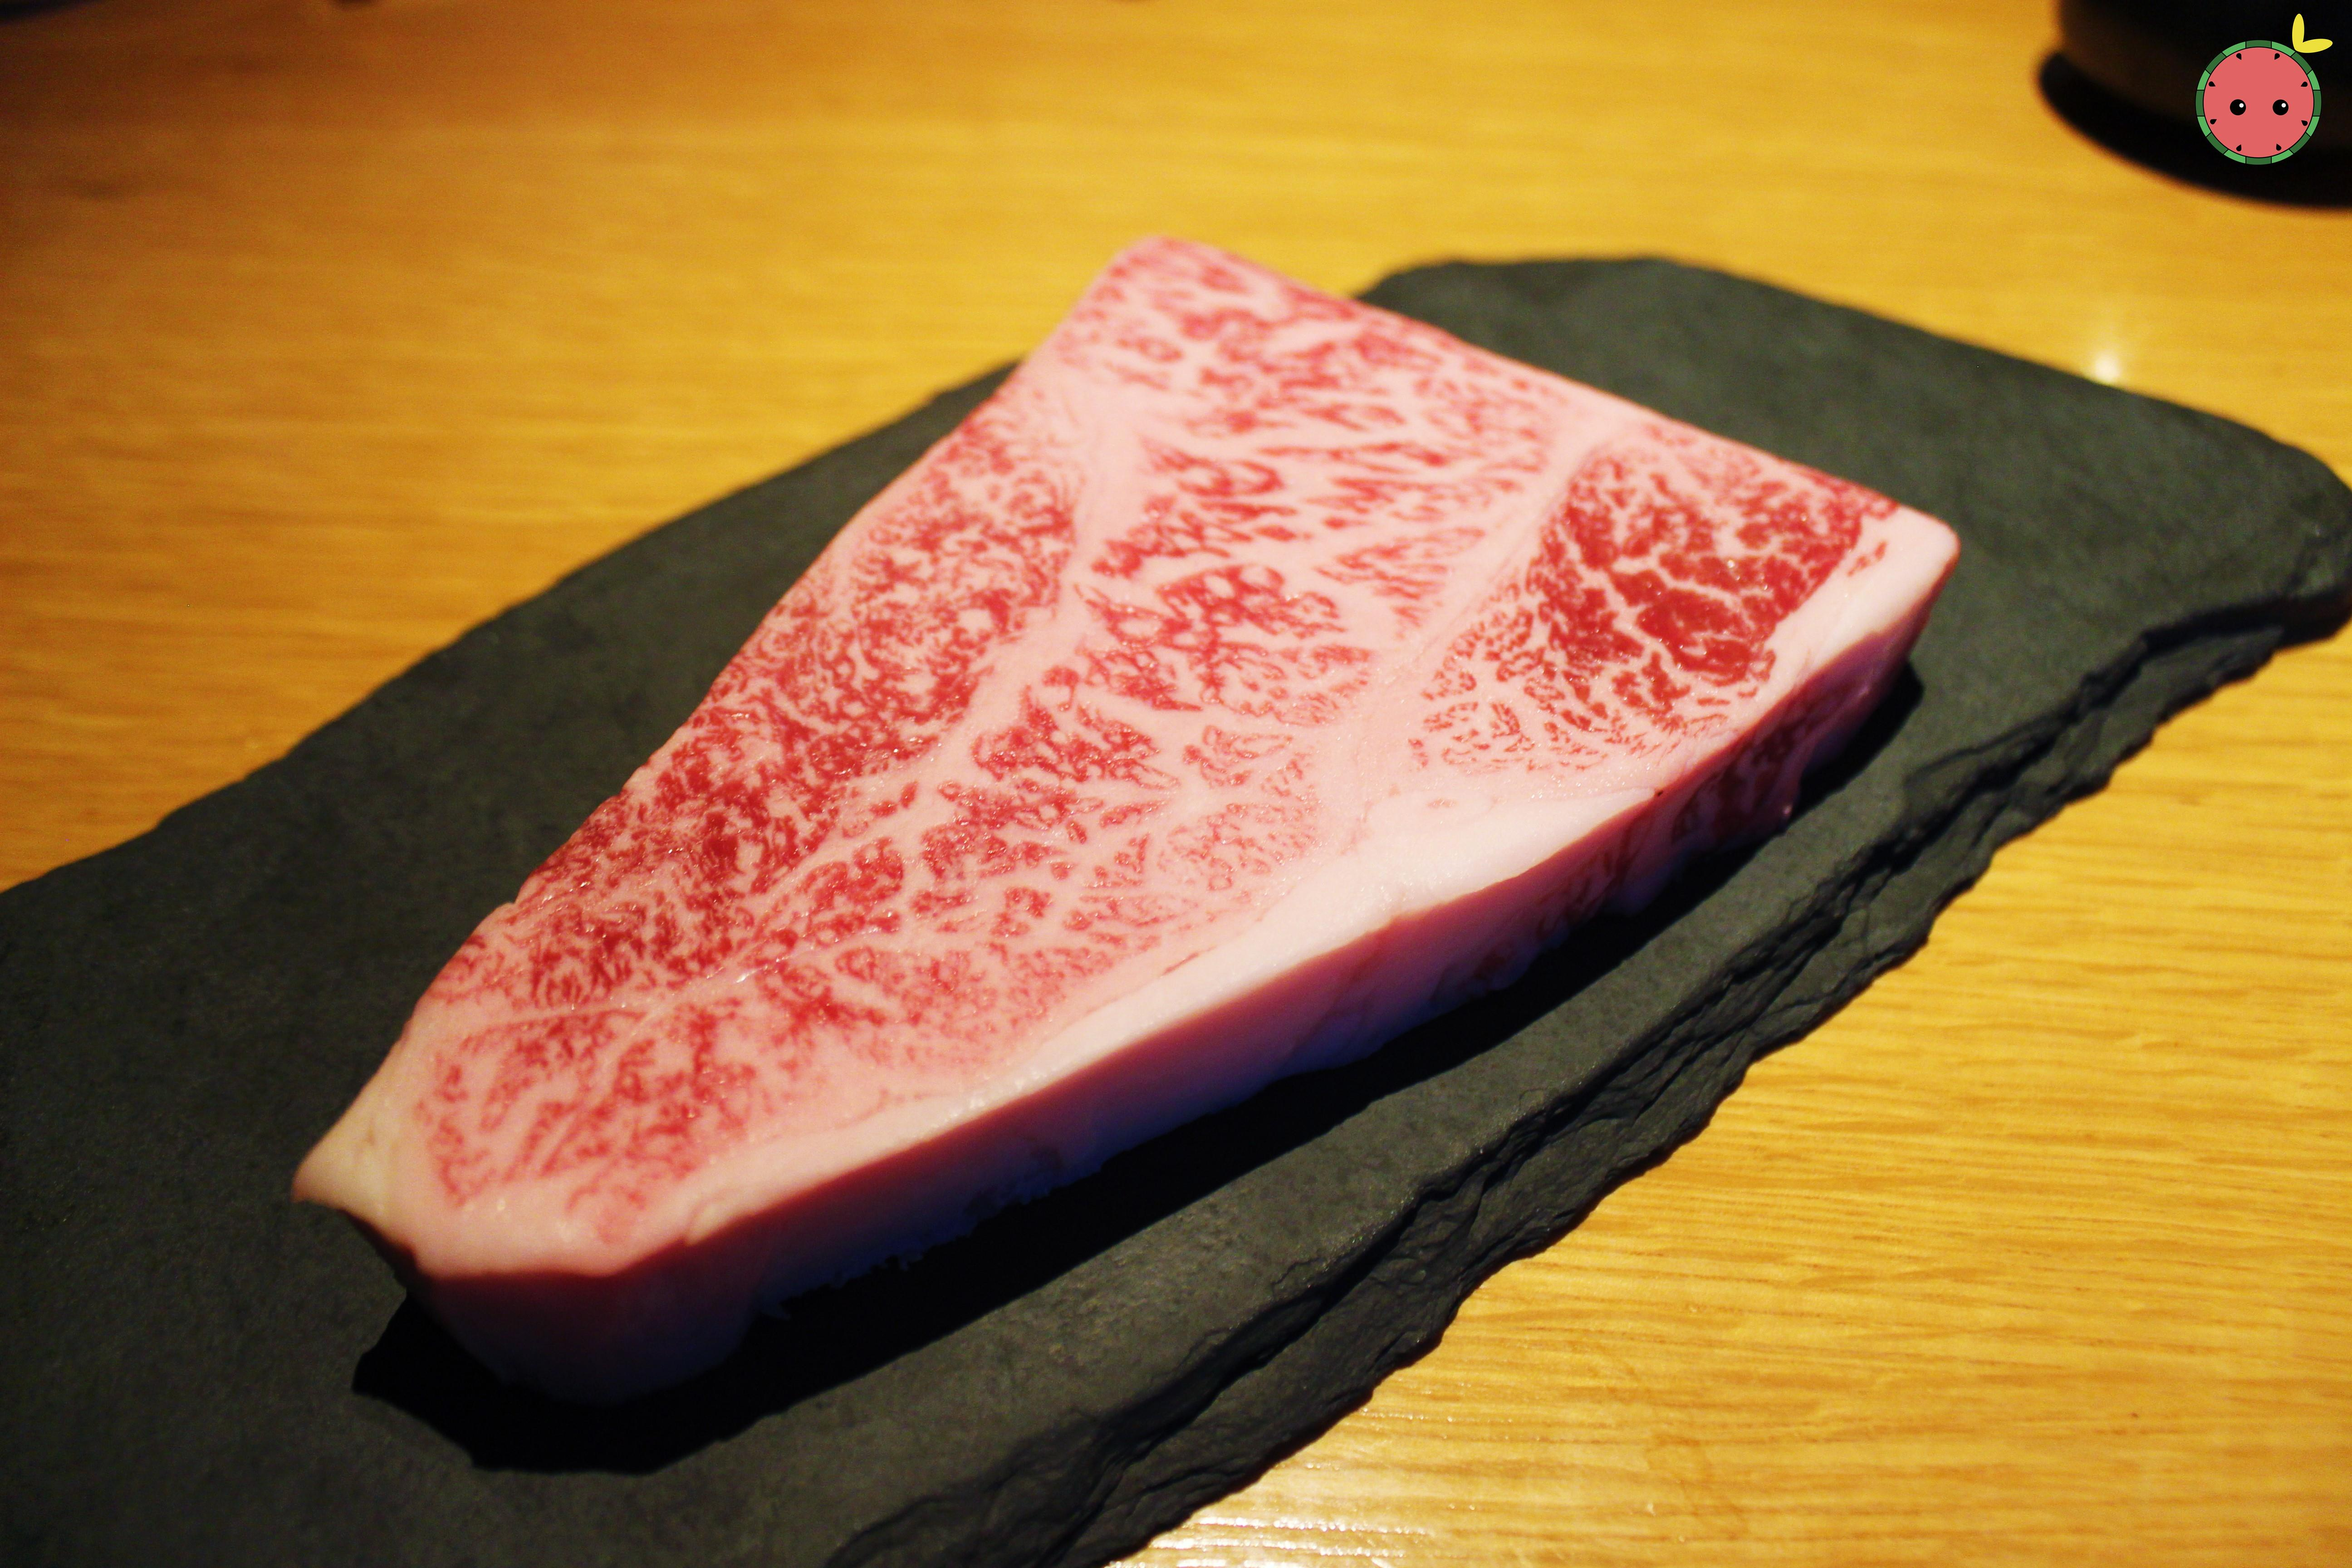 Wagyu from Miyazaki, Japan - Daily selection of grade A5, Japanese beef